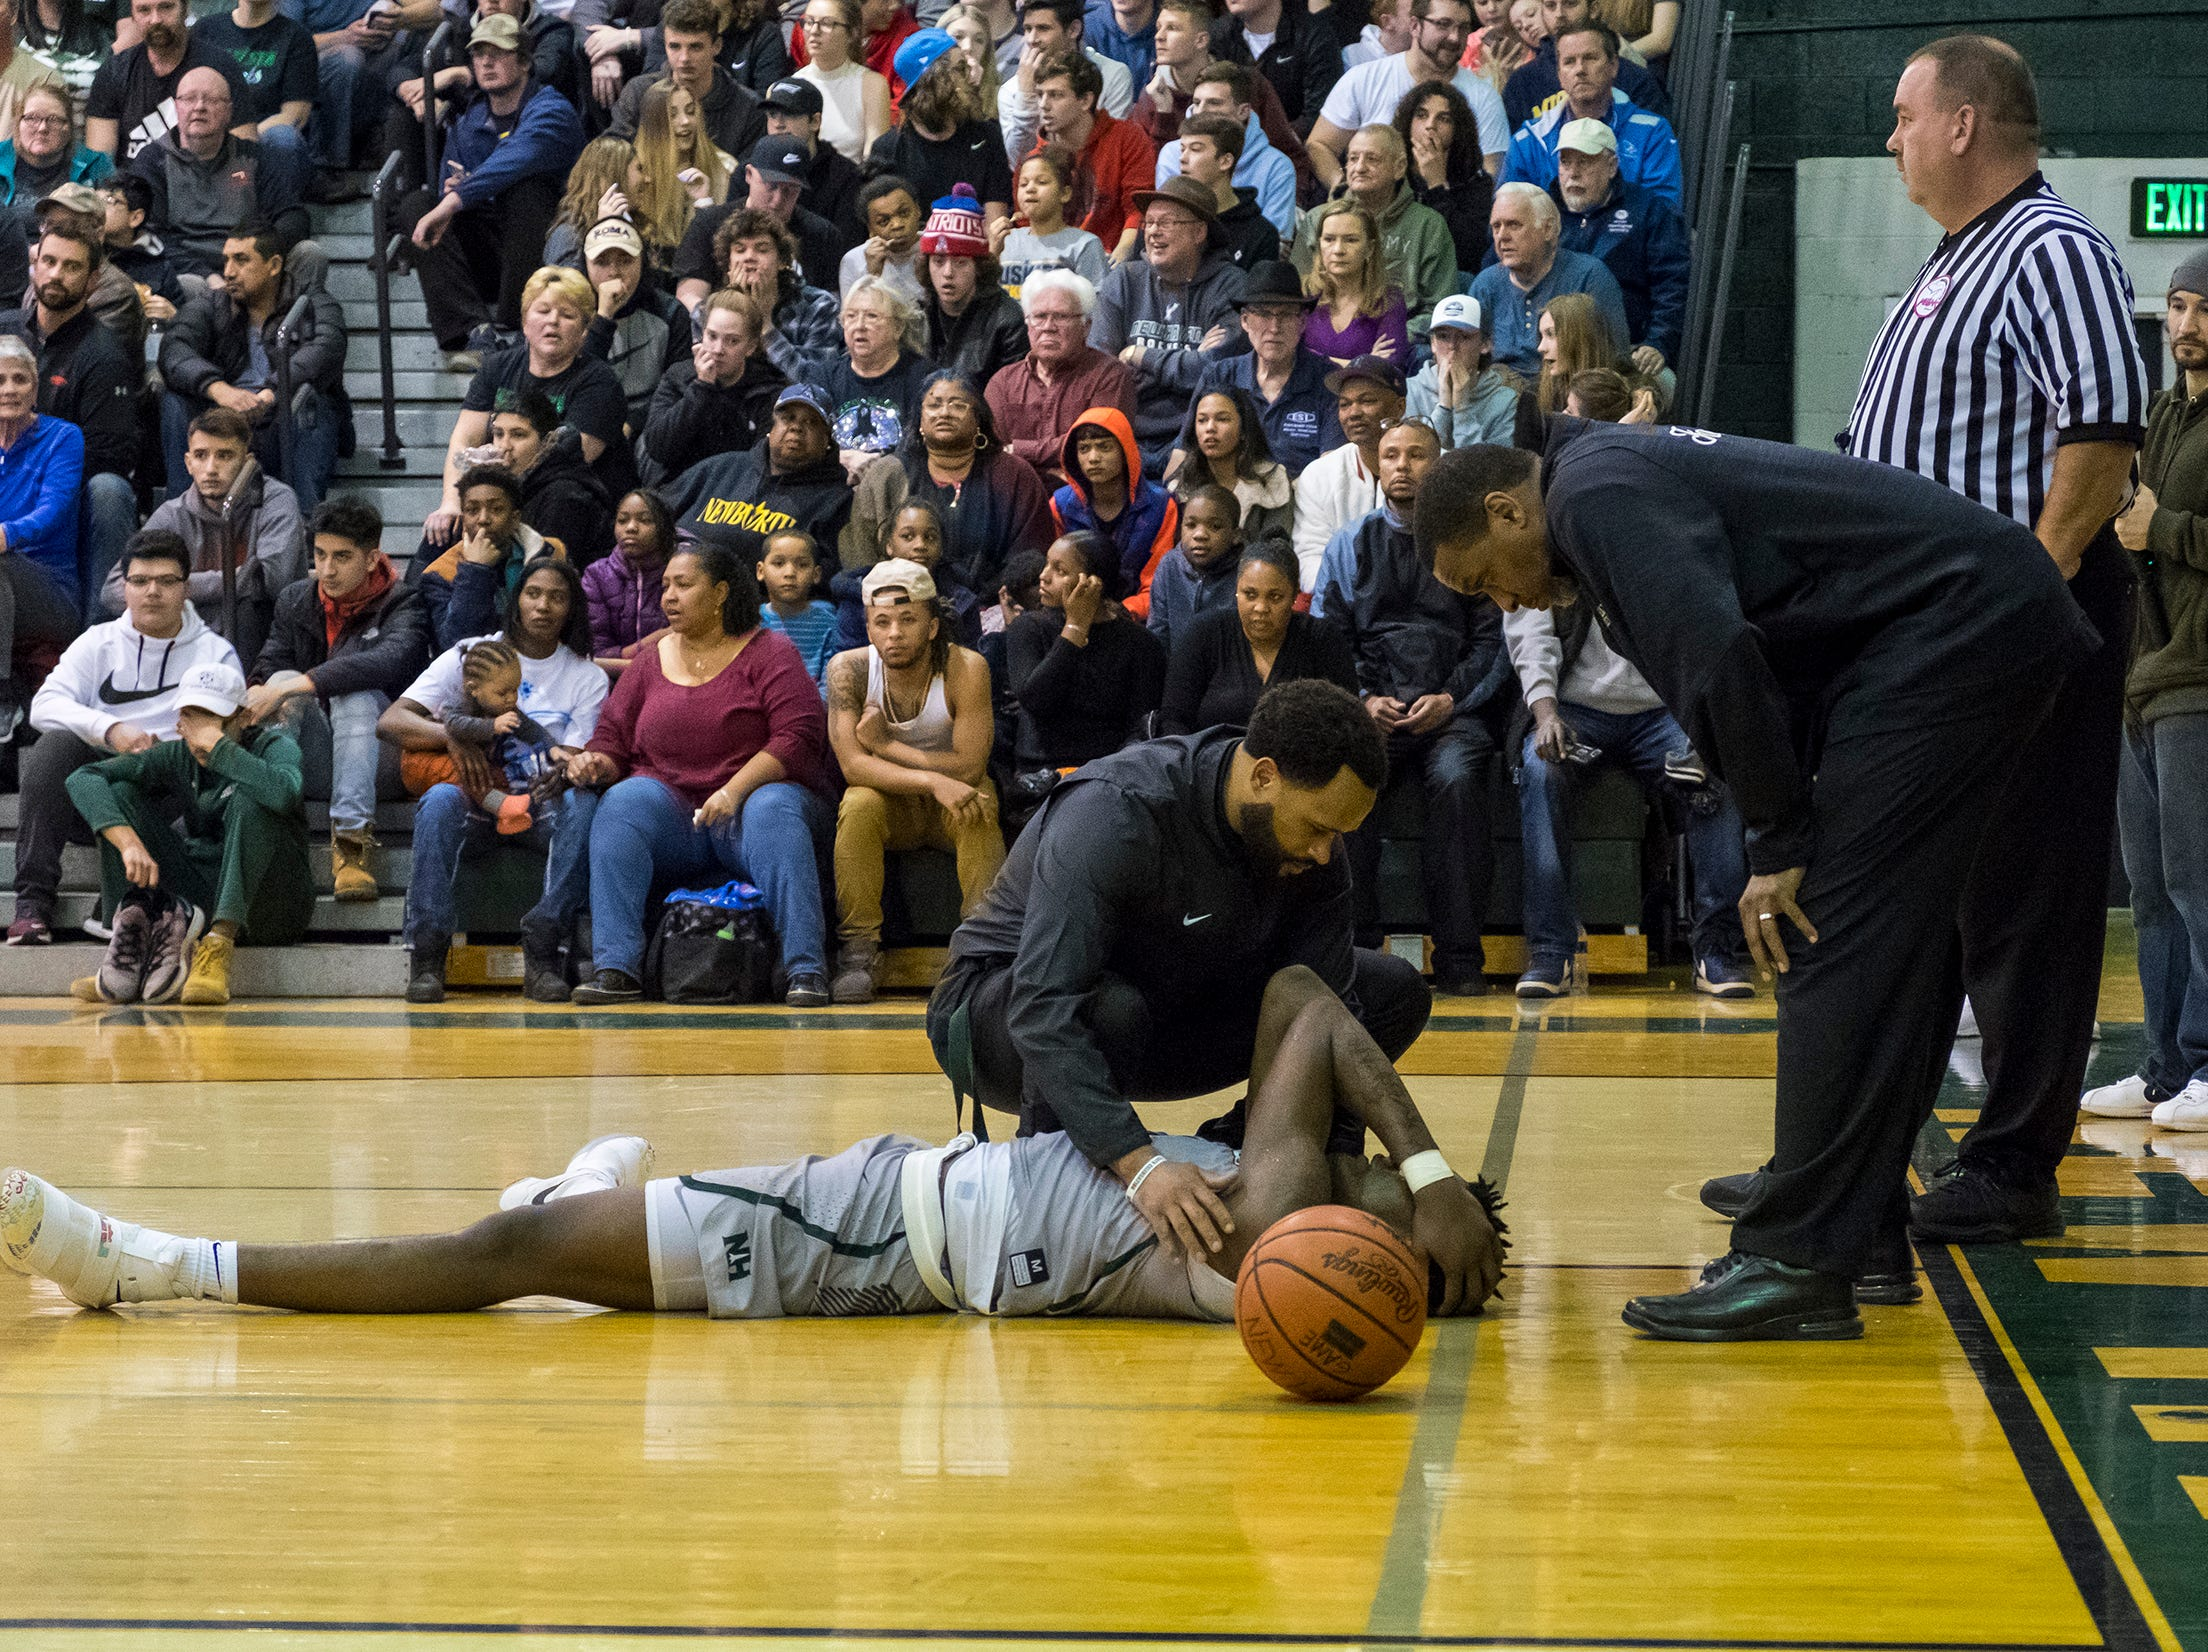 New Haven coaching staff tend to forward Romeo Weems after he hits the ground hard during the MHSAA Division 2 Boys Basketball District Finals against Richmond High School Friday, March 1, 2019 at New Haven High School.